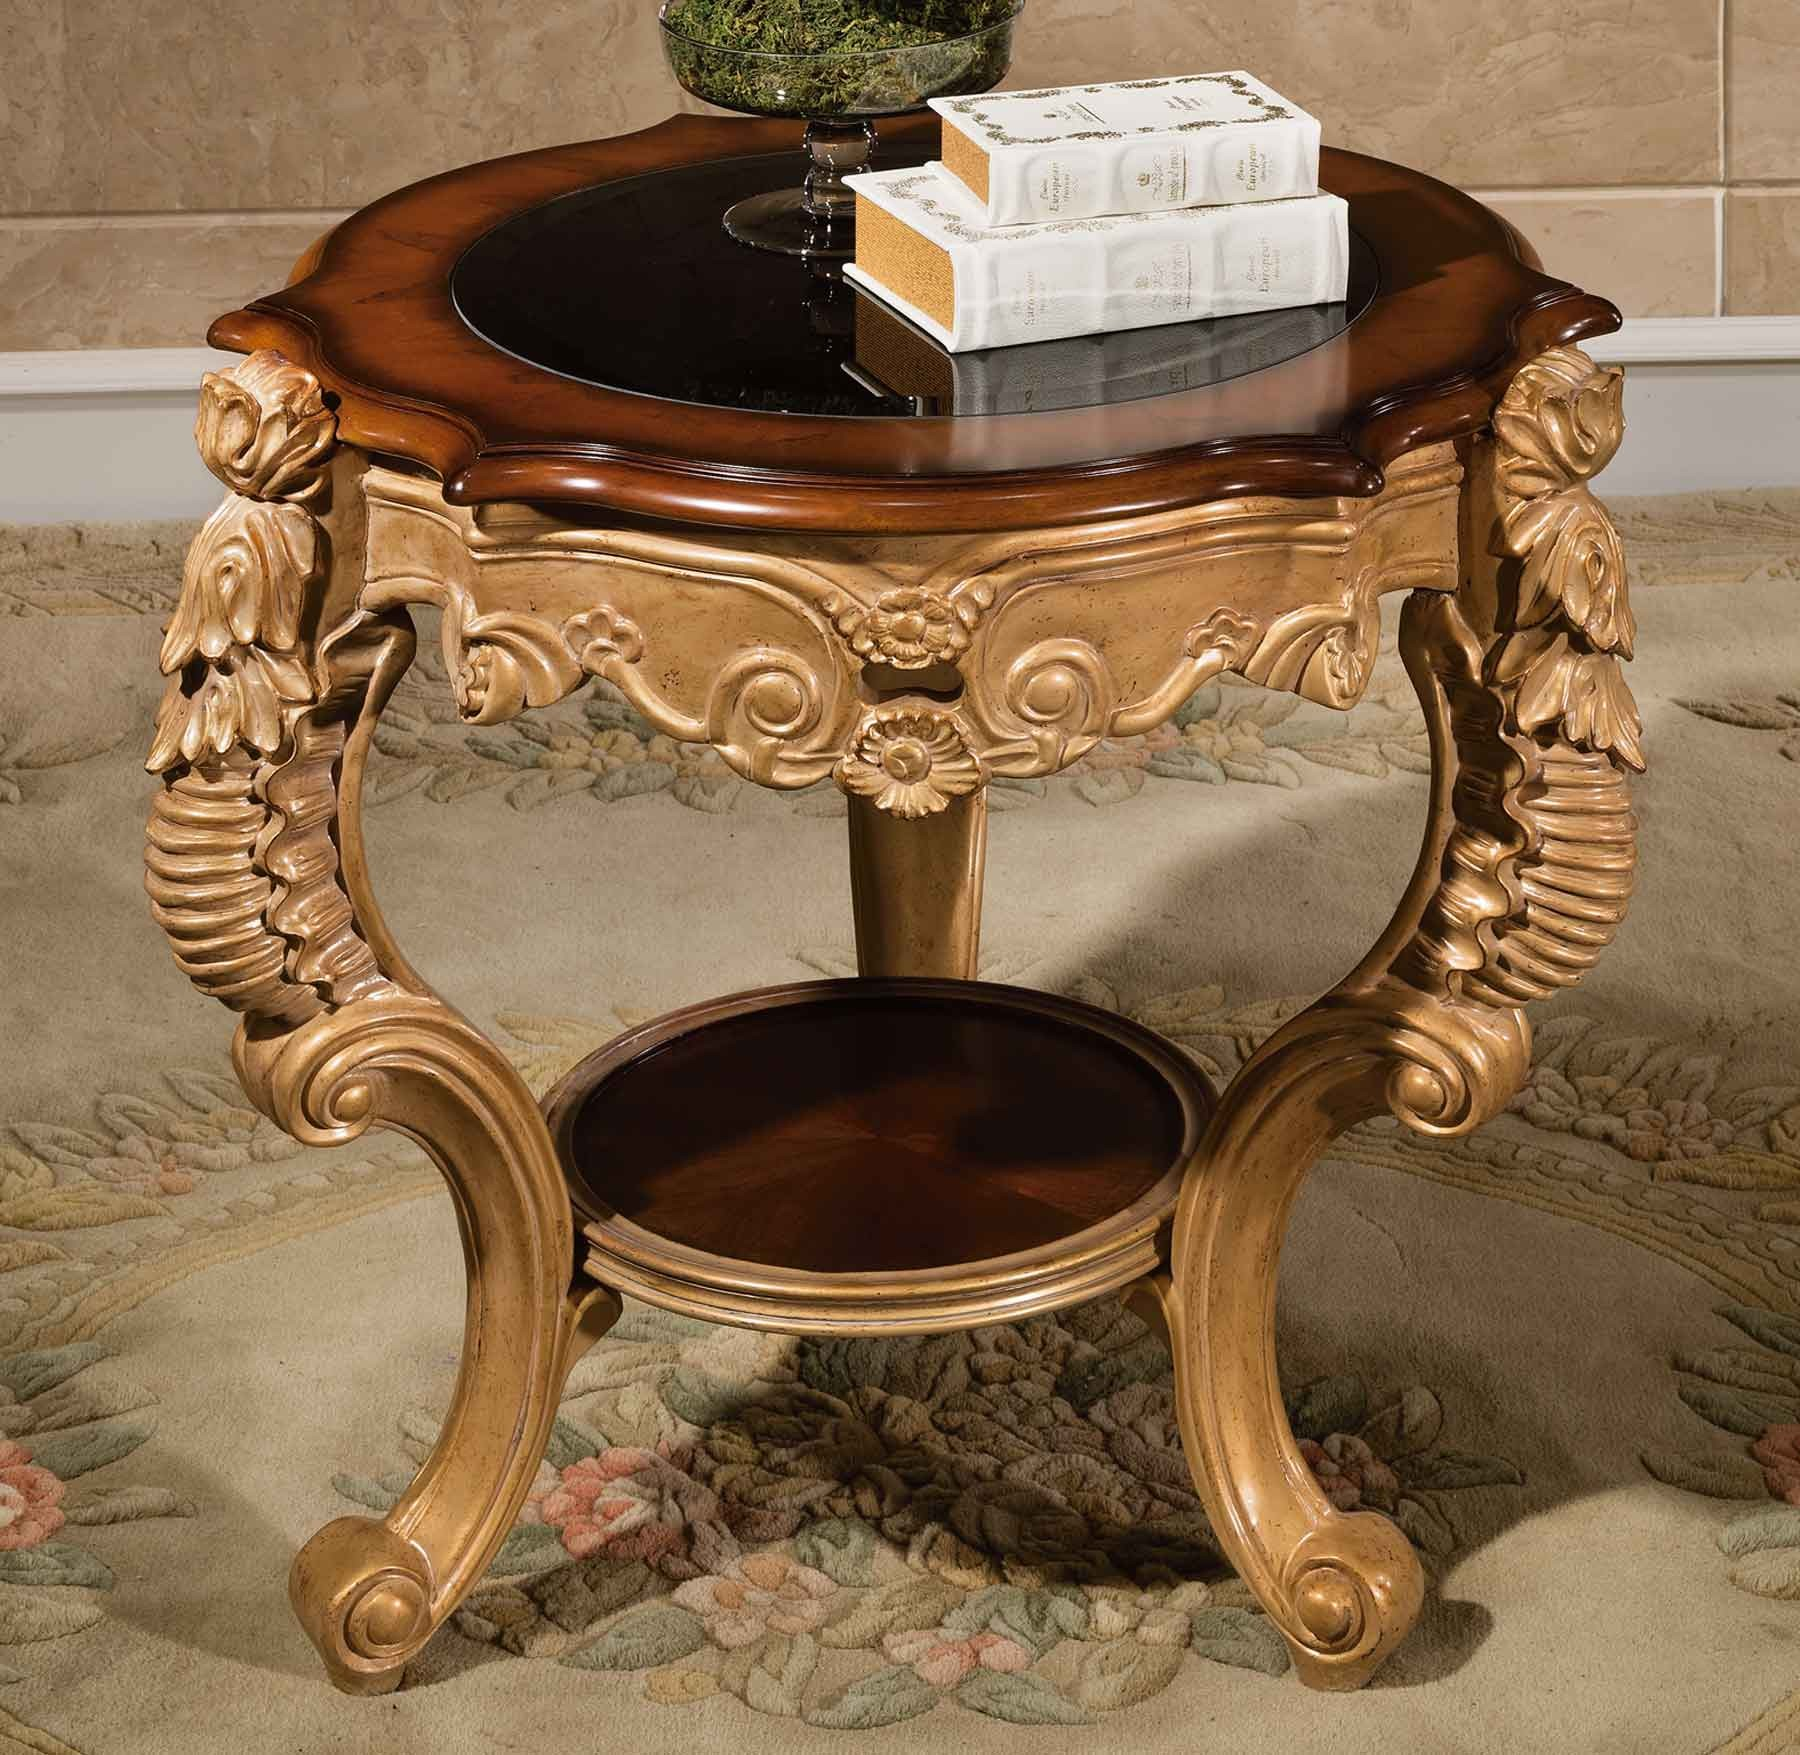 fountaine end table w glass top shown in an antique gold finish